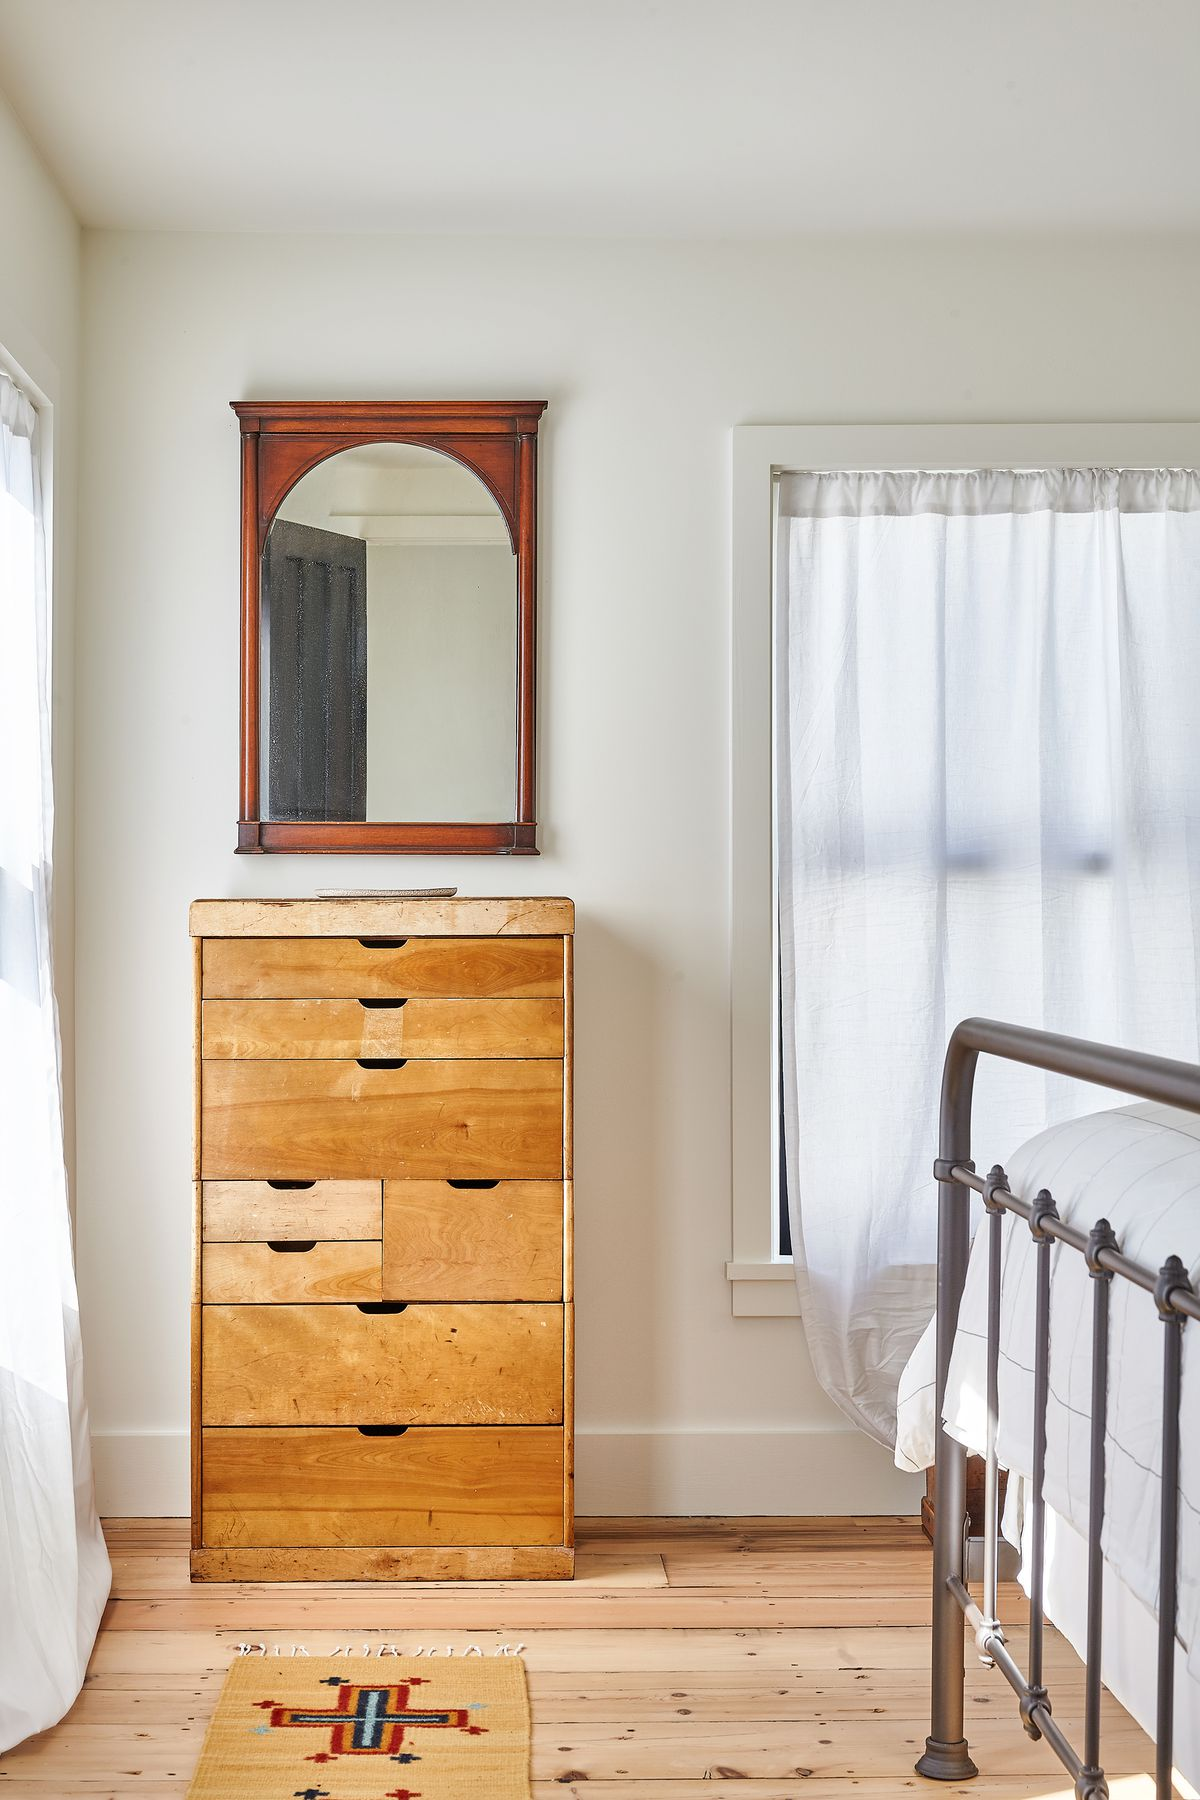 A bedroom contains a vintage wood dresser with a mirror hanging over it.